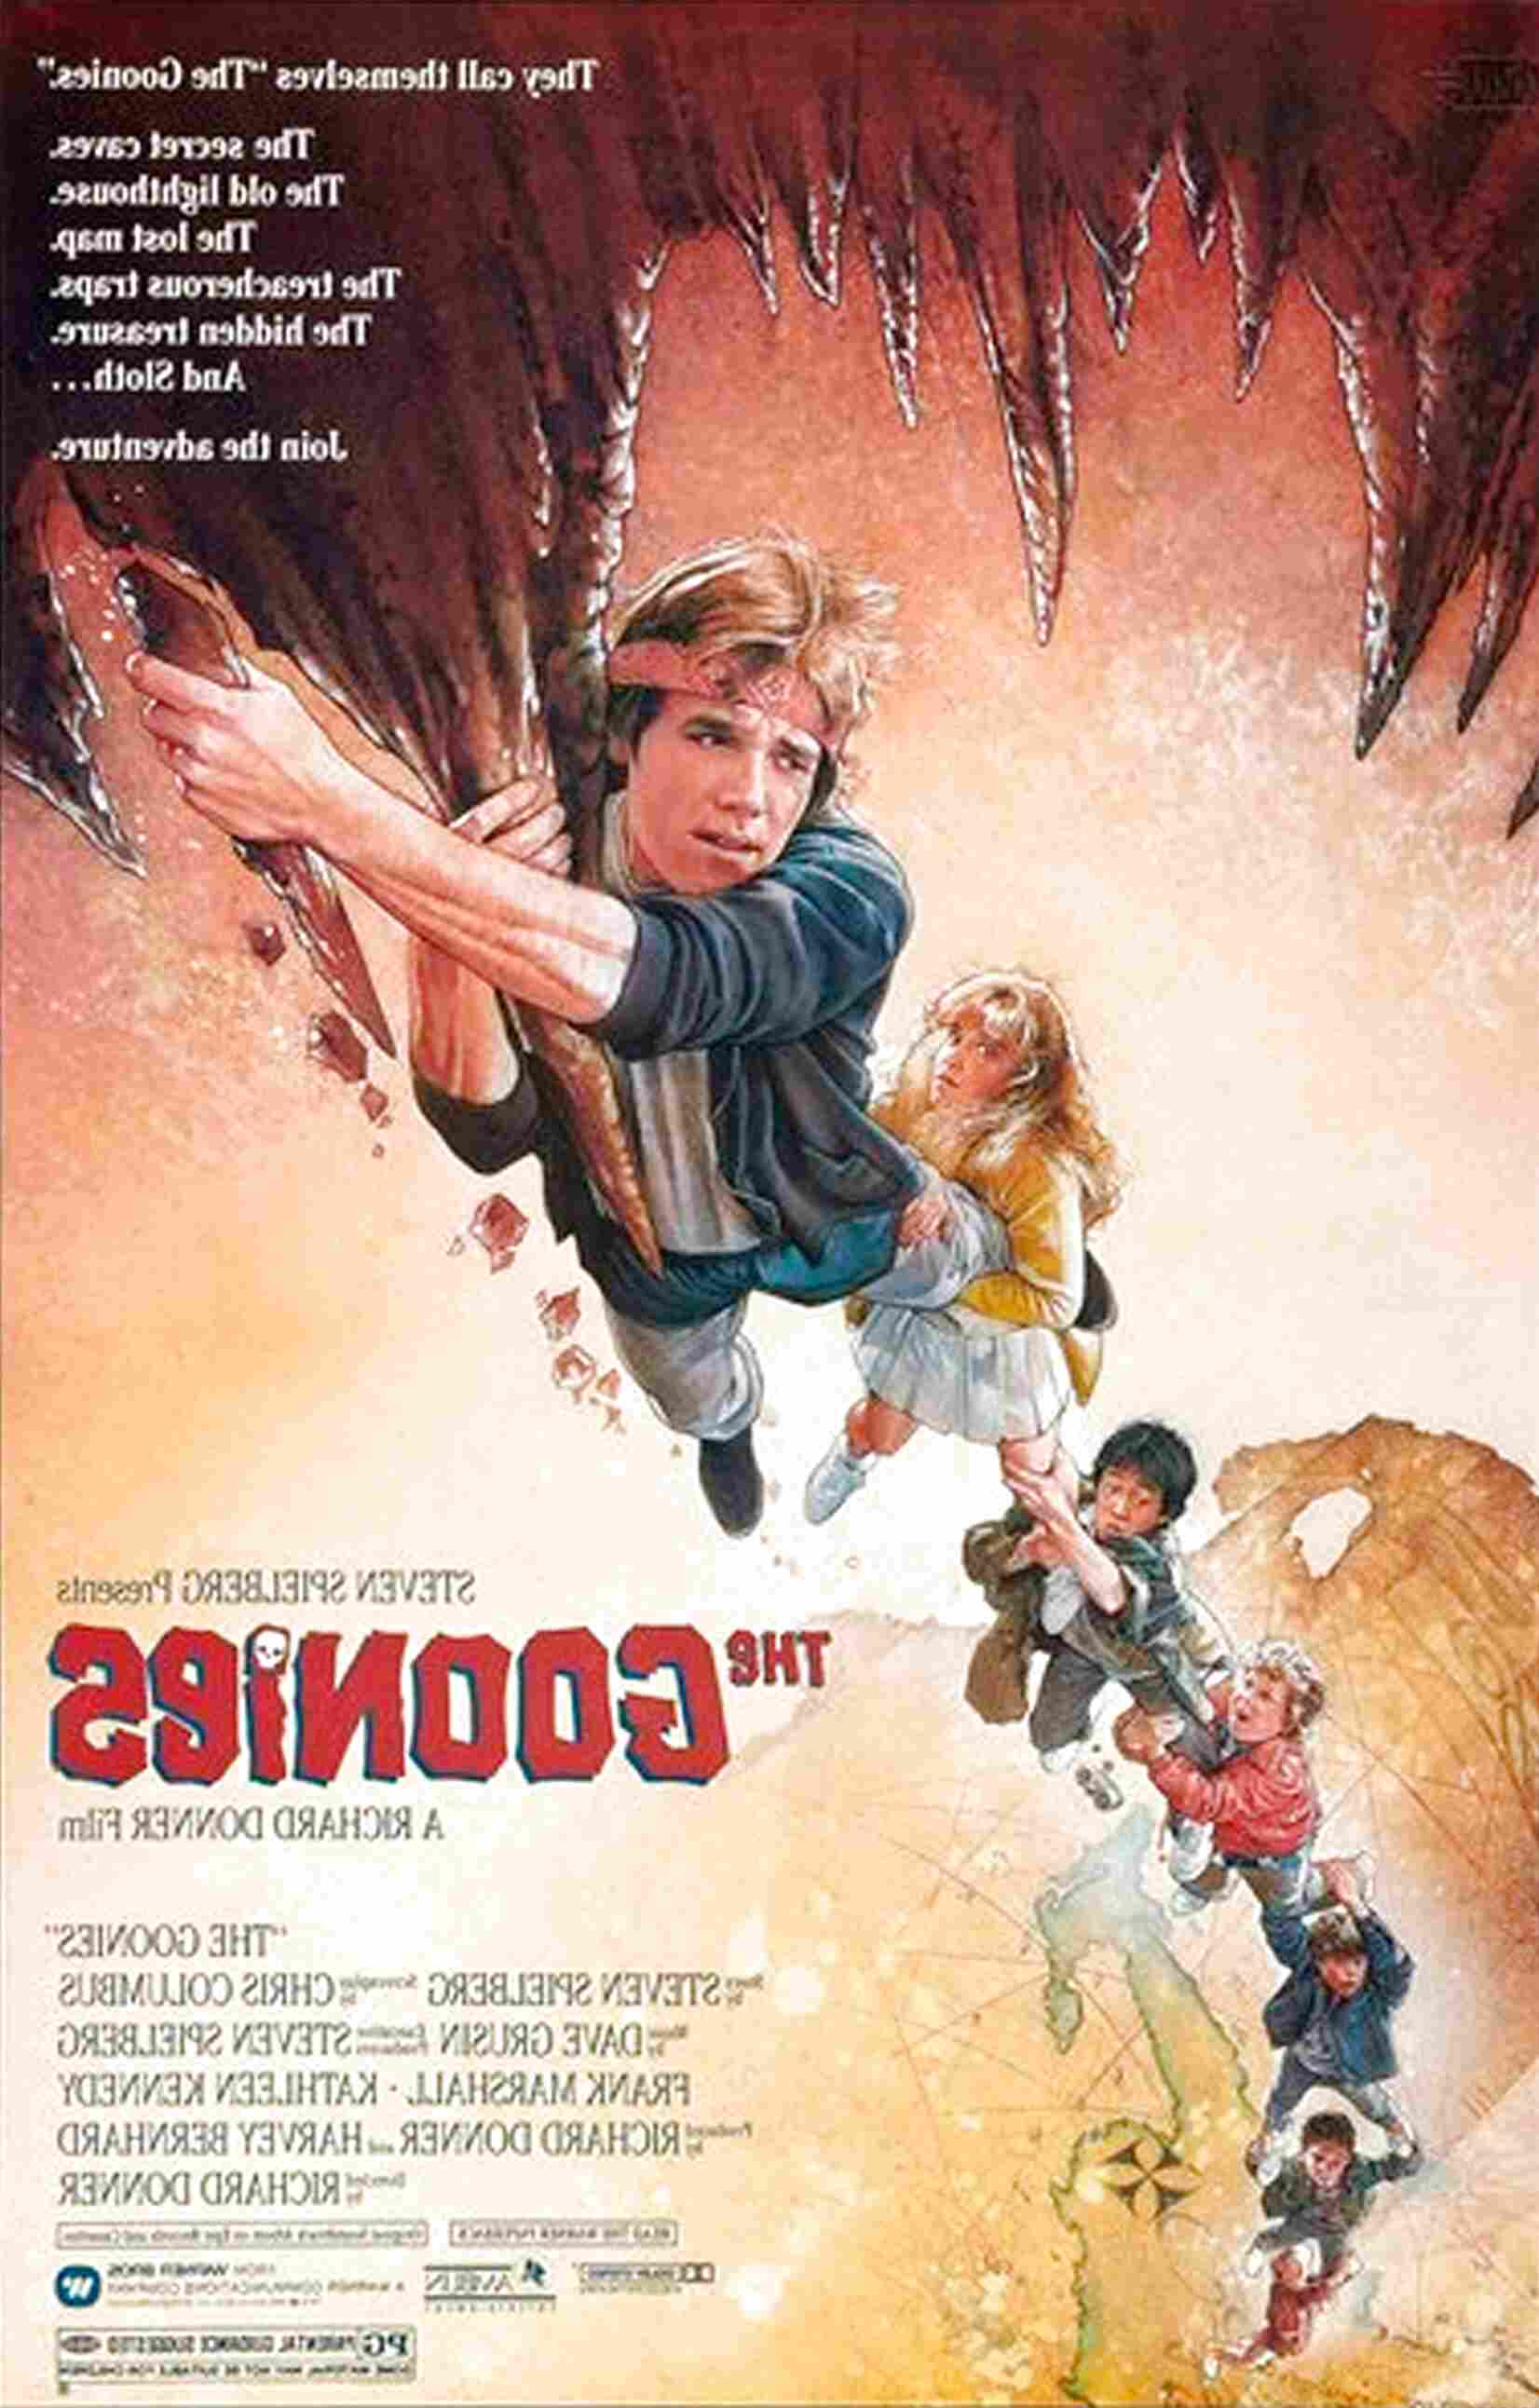 Goonies 1985 For Sale Only 4 Left At 70